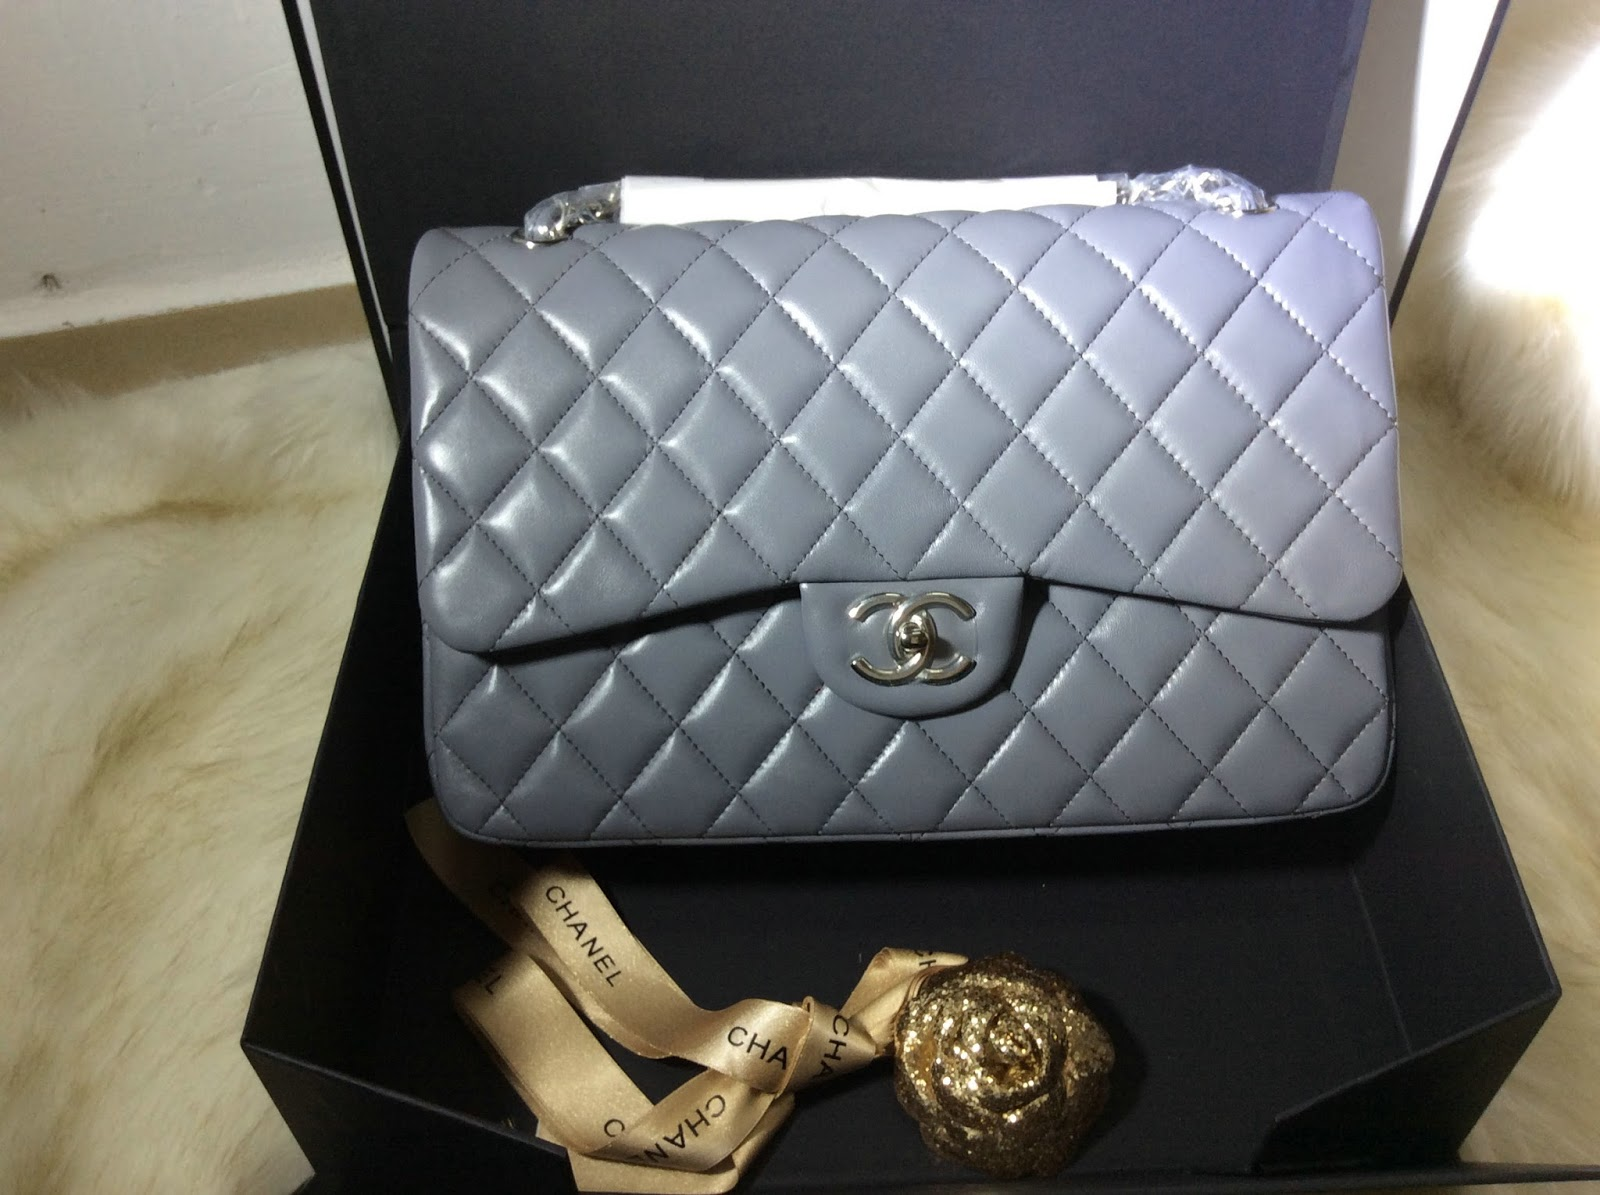 80f34f7da878d6 Pre shipment Photos of Chanel Classic Flap Jumbo Bag in lambskin grey  silver hardware best original quality, comes with full set package